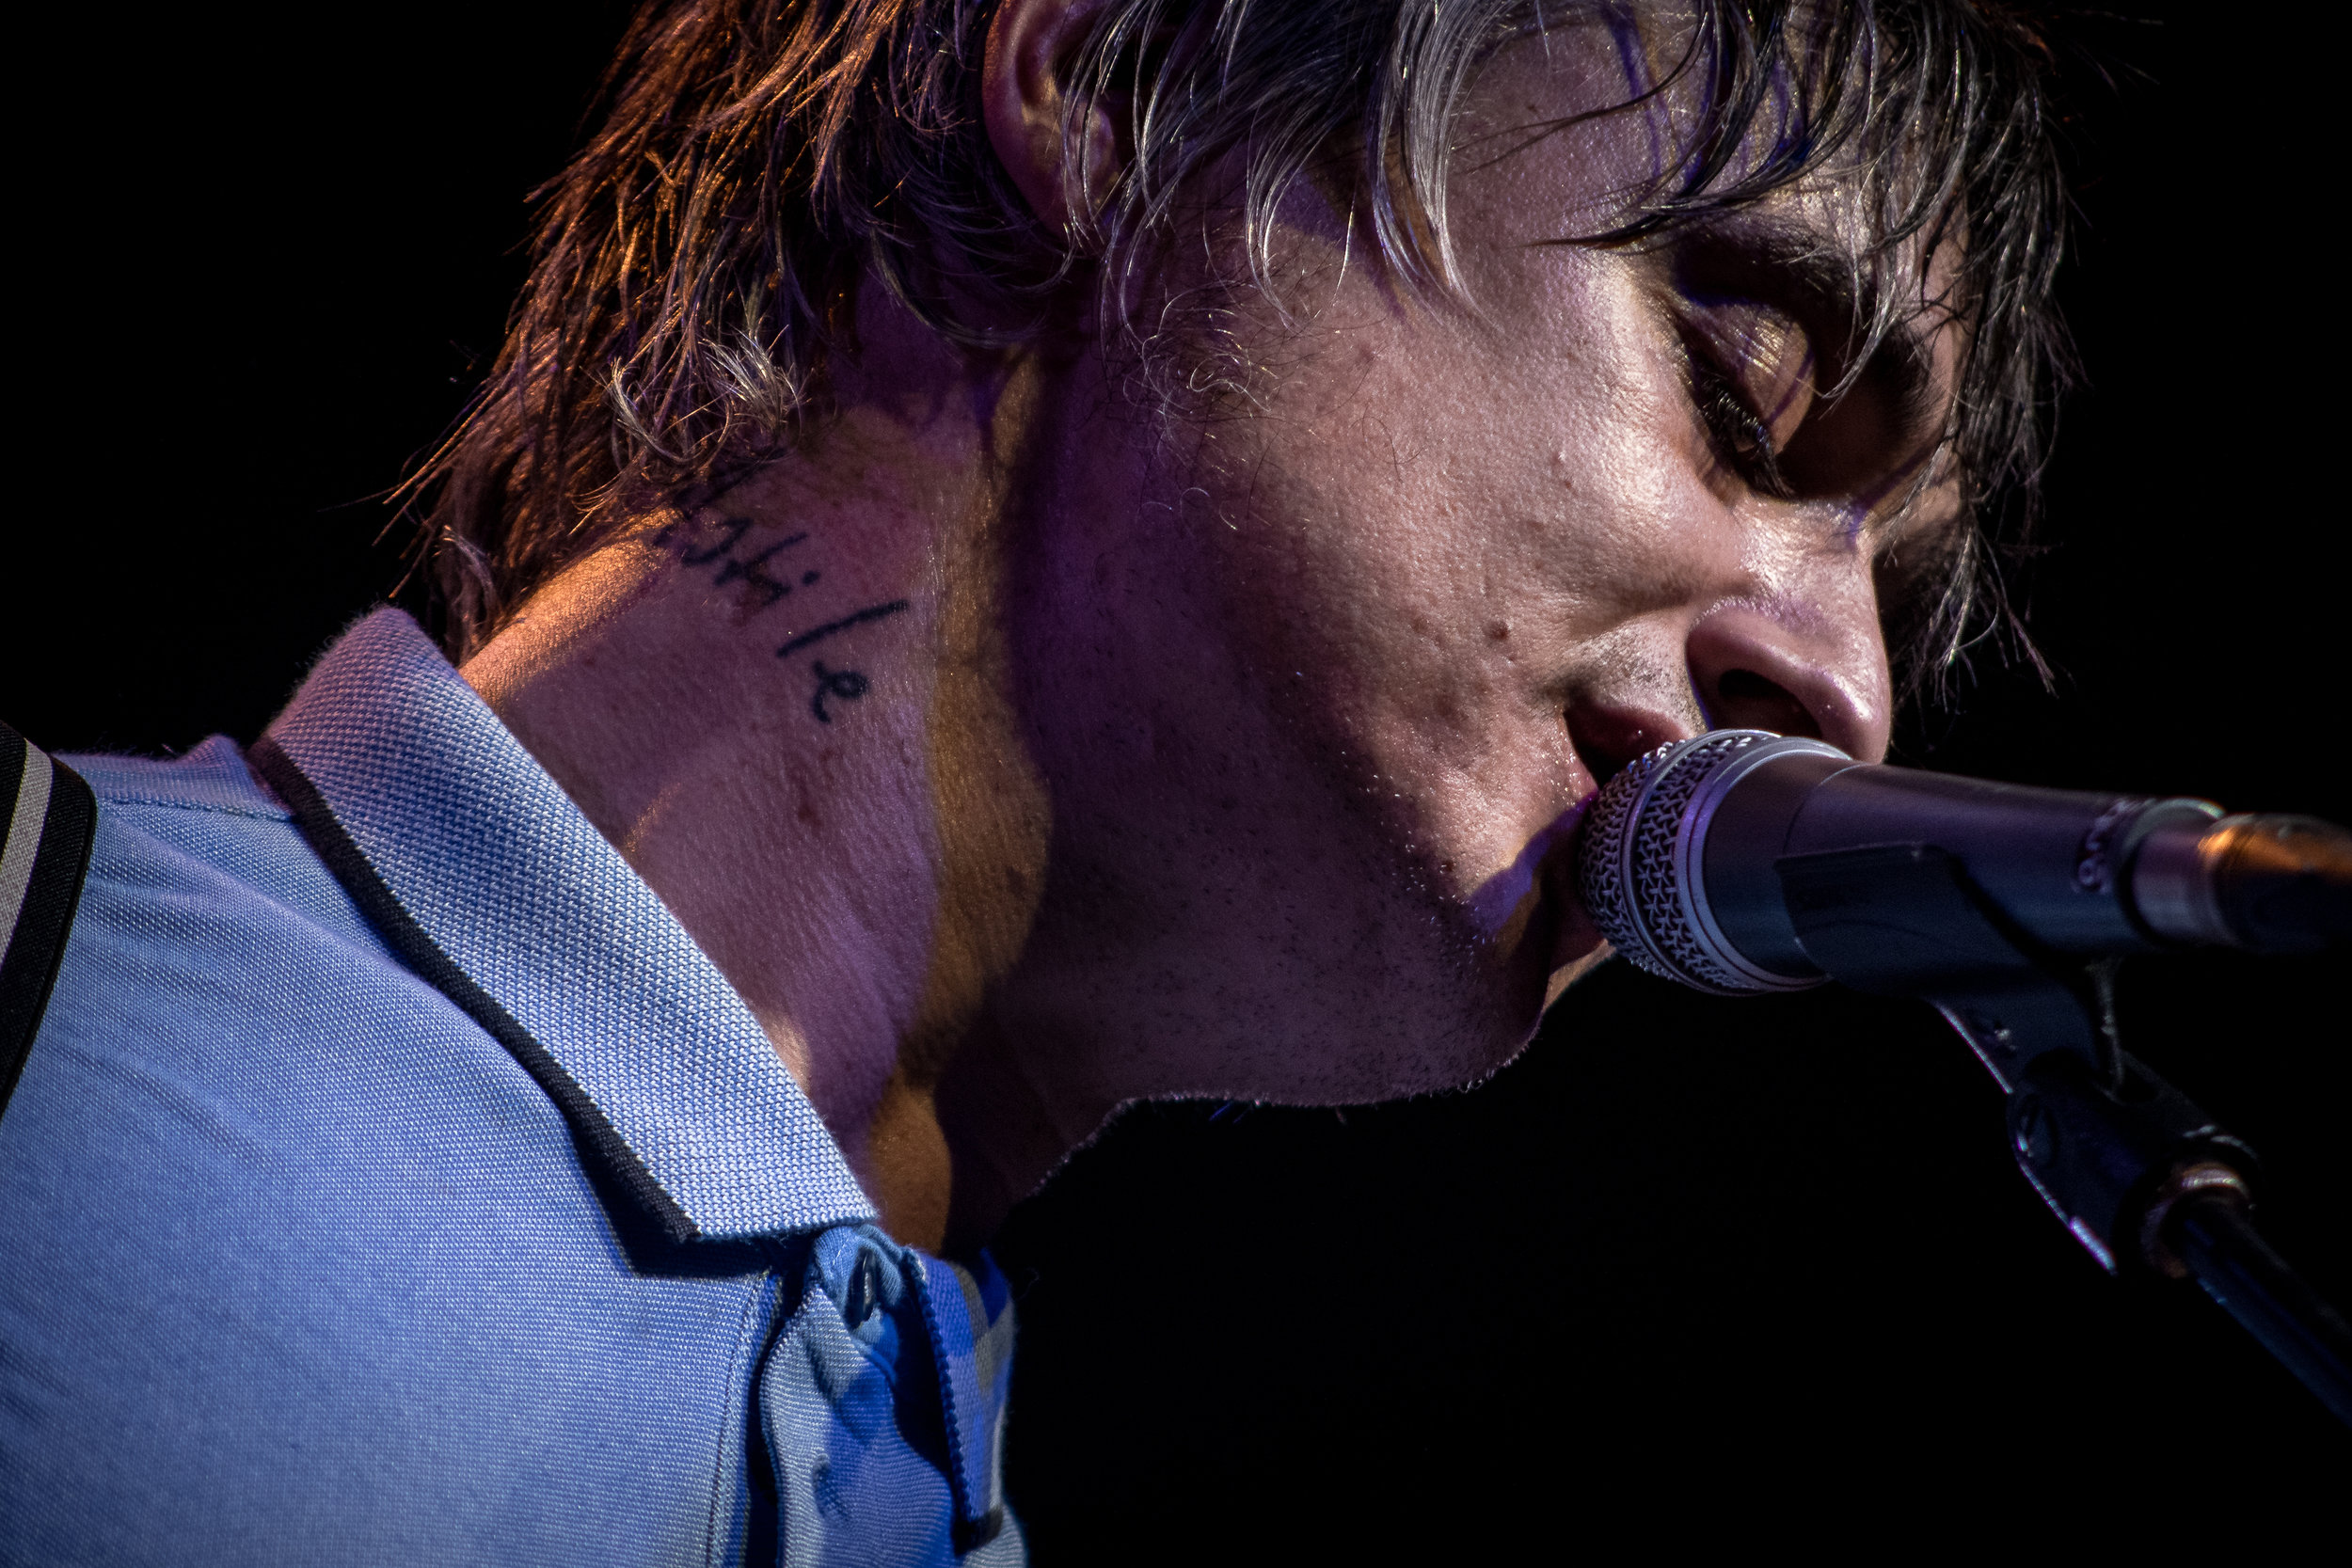 Peter Doherty and the Puta Madres  -  live 02 Ritz 09/05/19